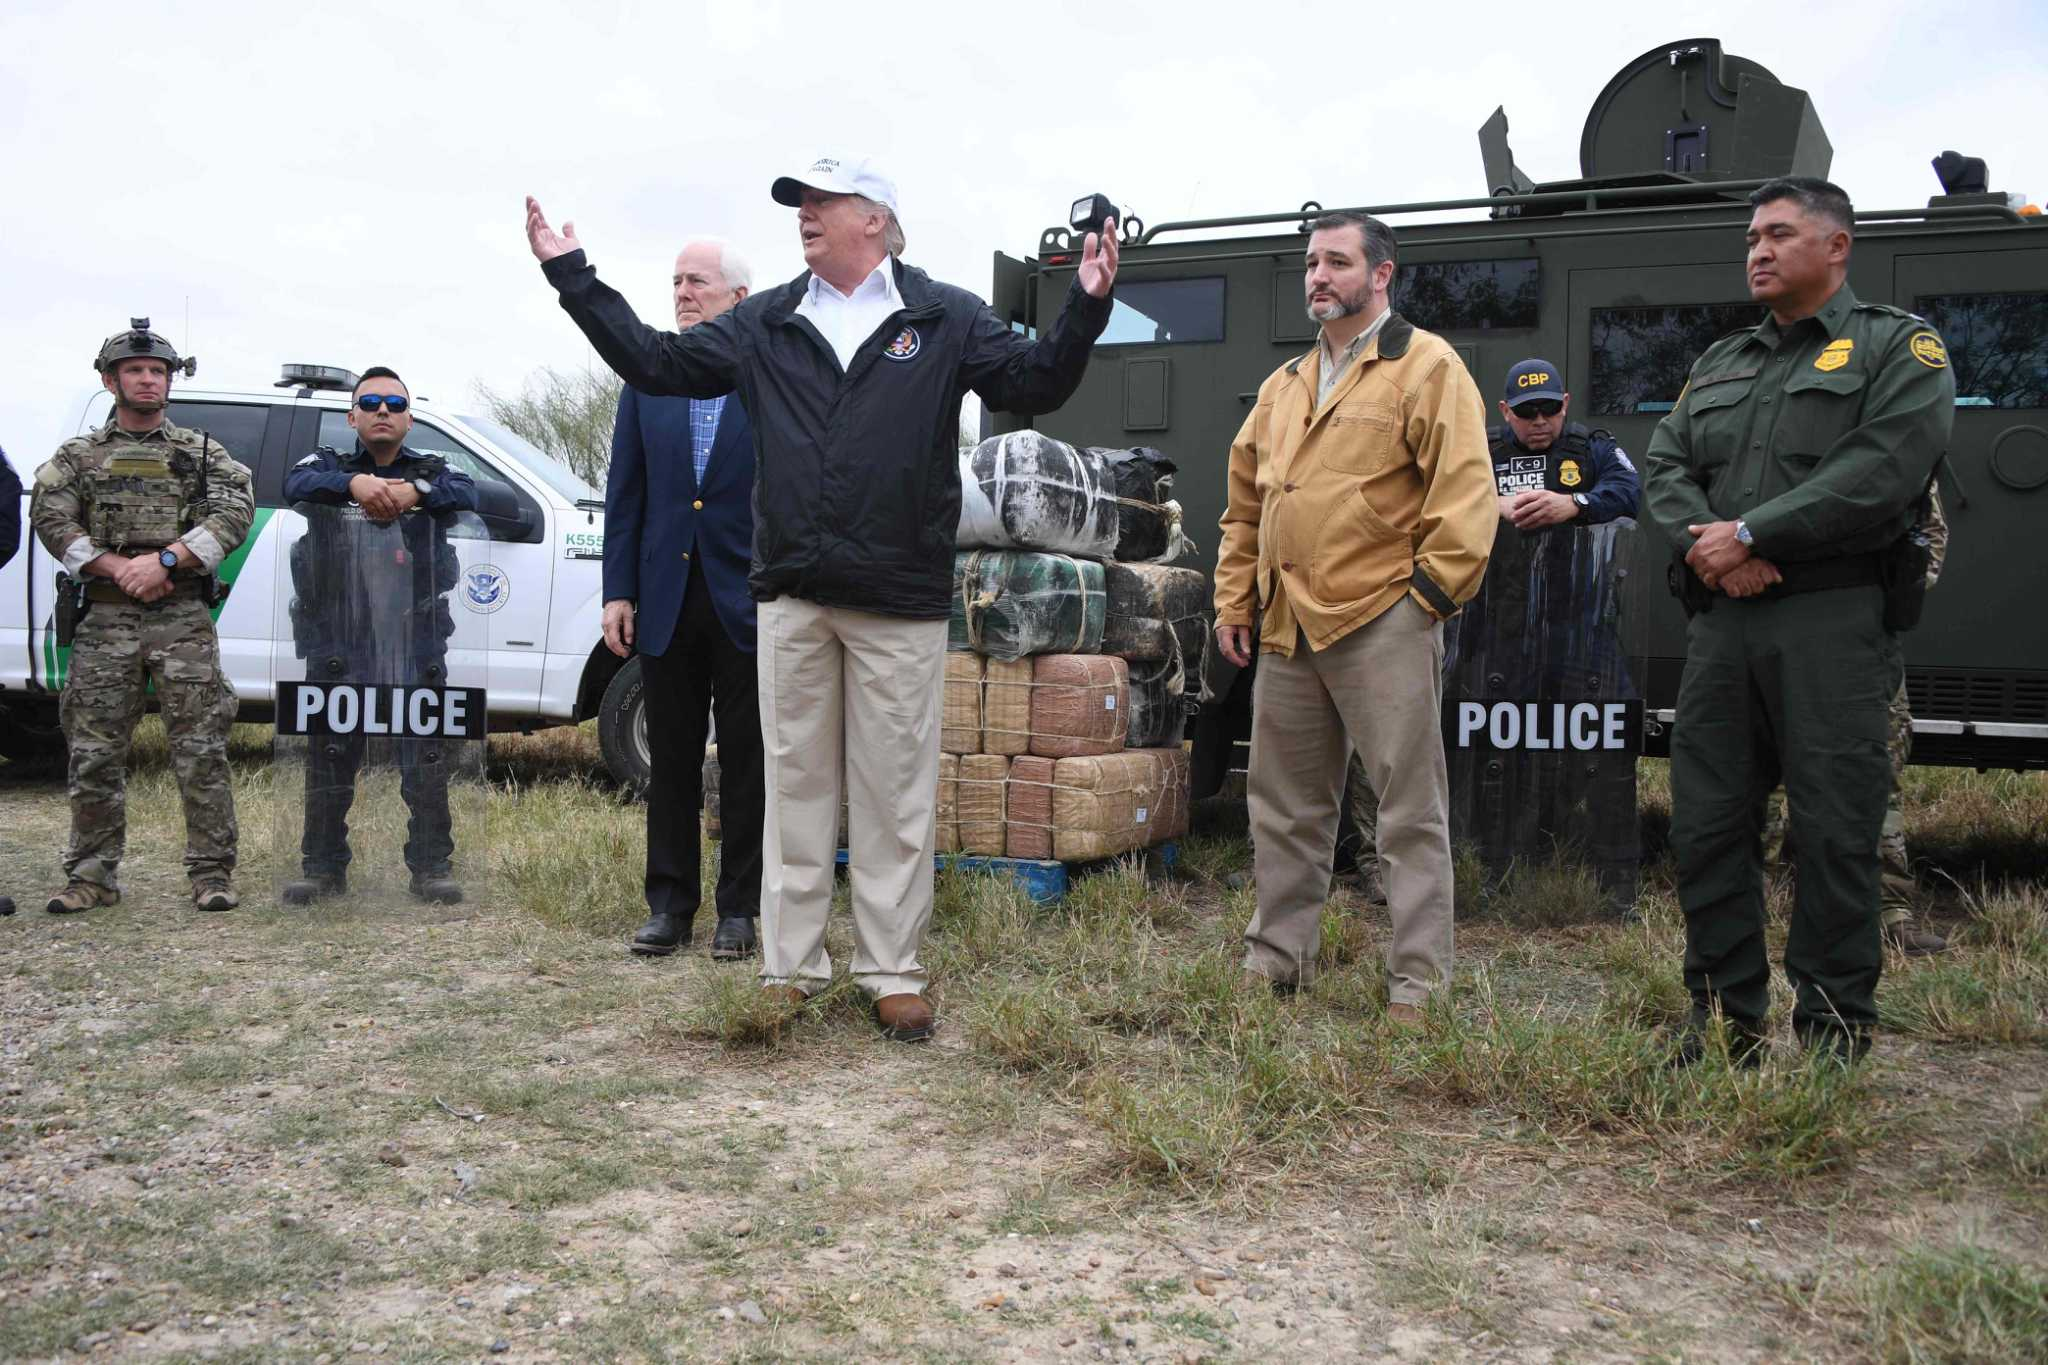 Texas lawmakers host dueling events at state Capitol today on border security